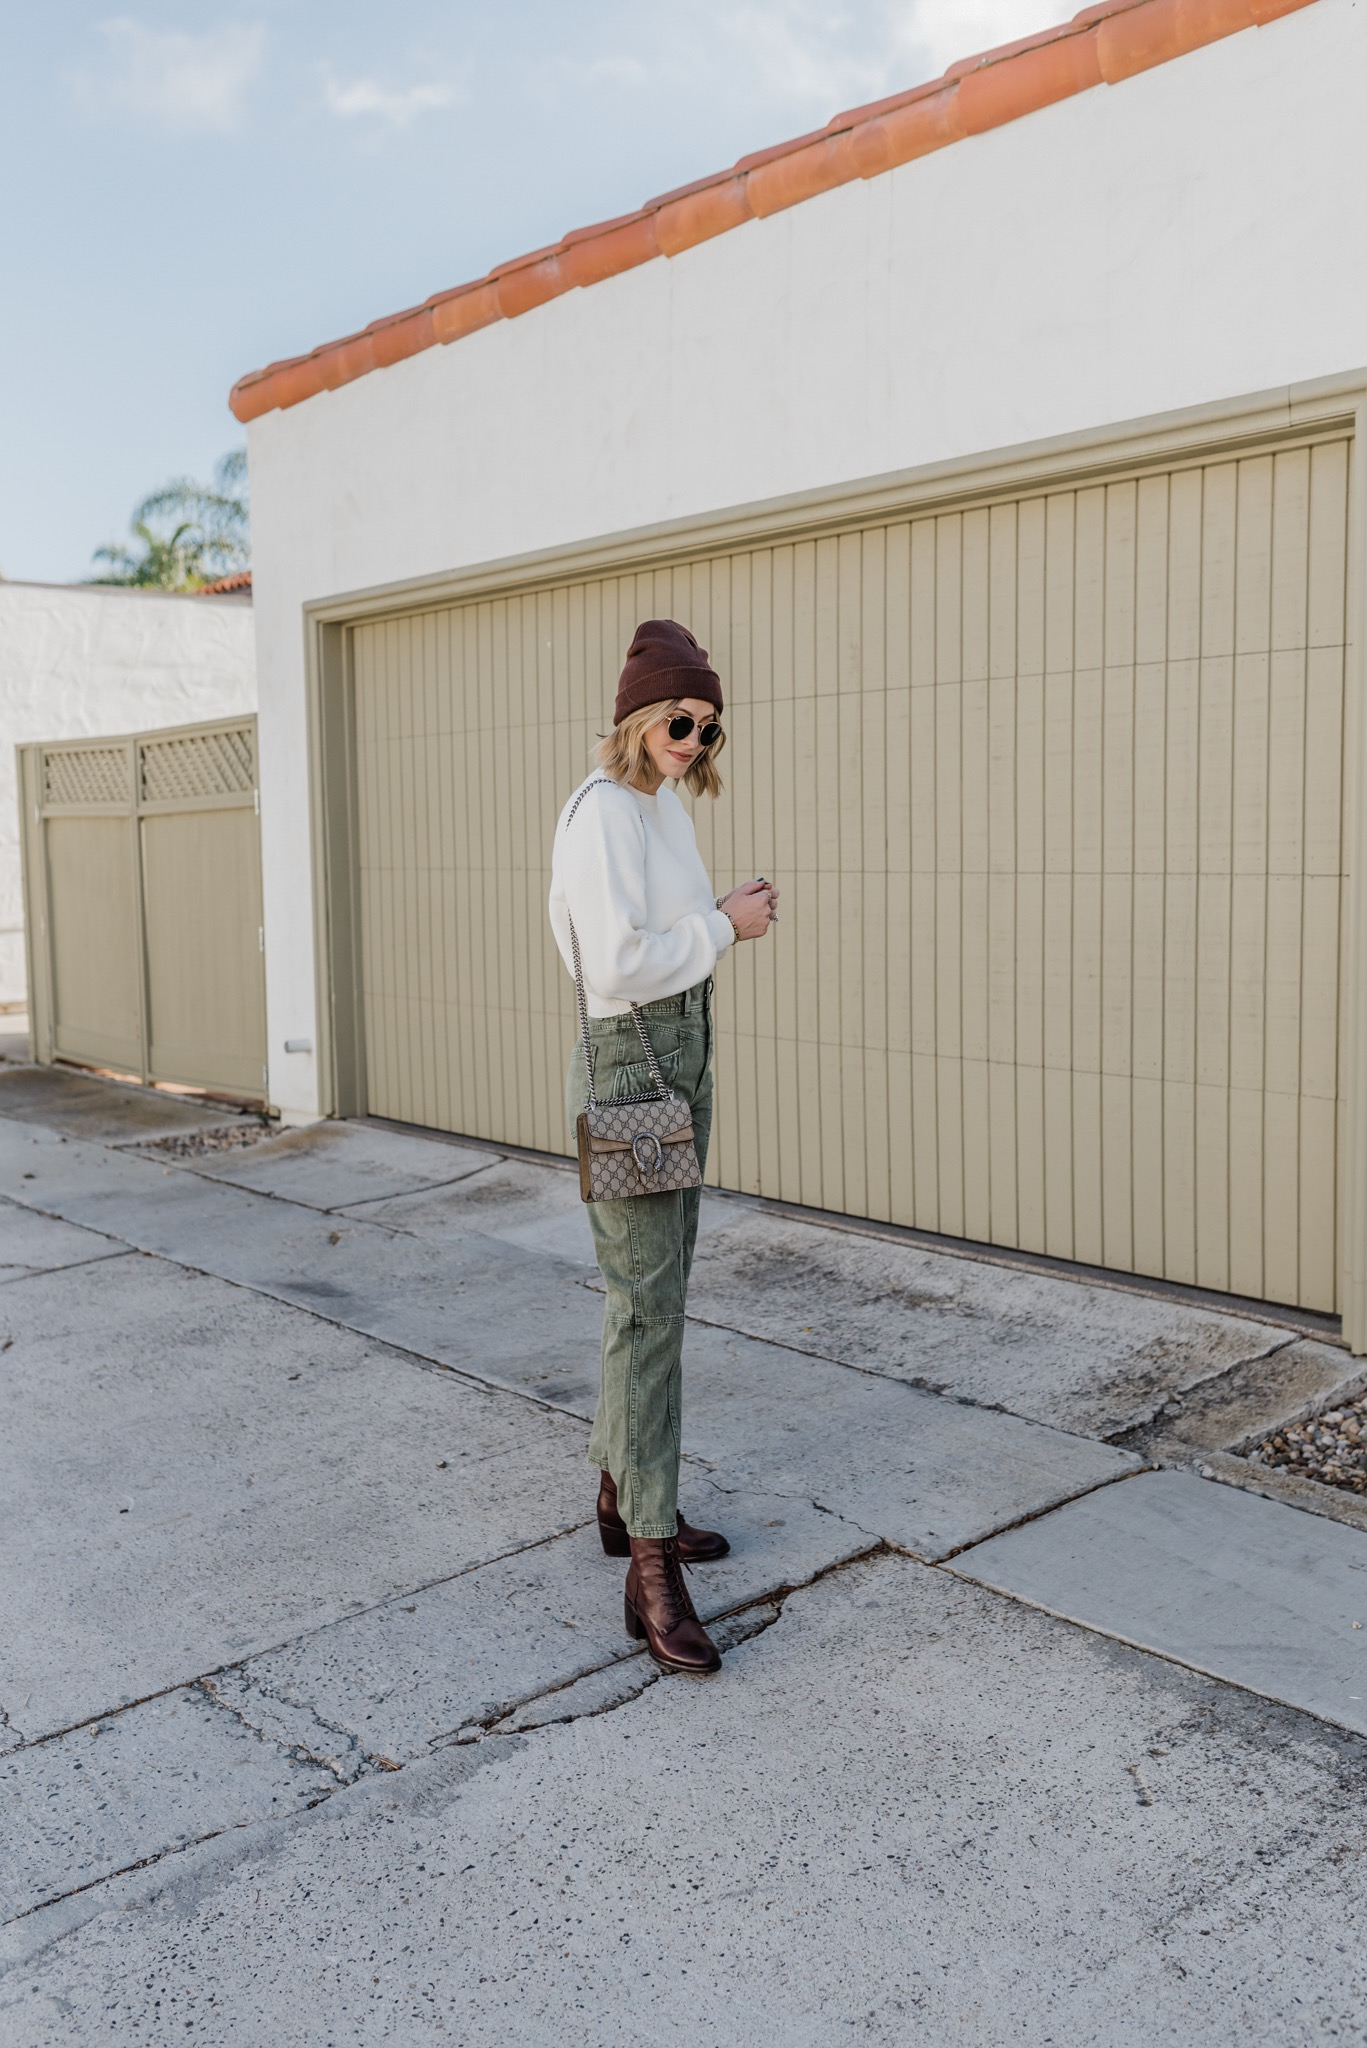 Winter Accessories - Navy Grace - Camilla Thurman - Lady in Green Pants and Brown Beanie